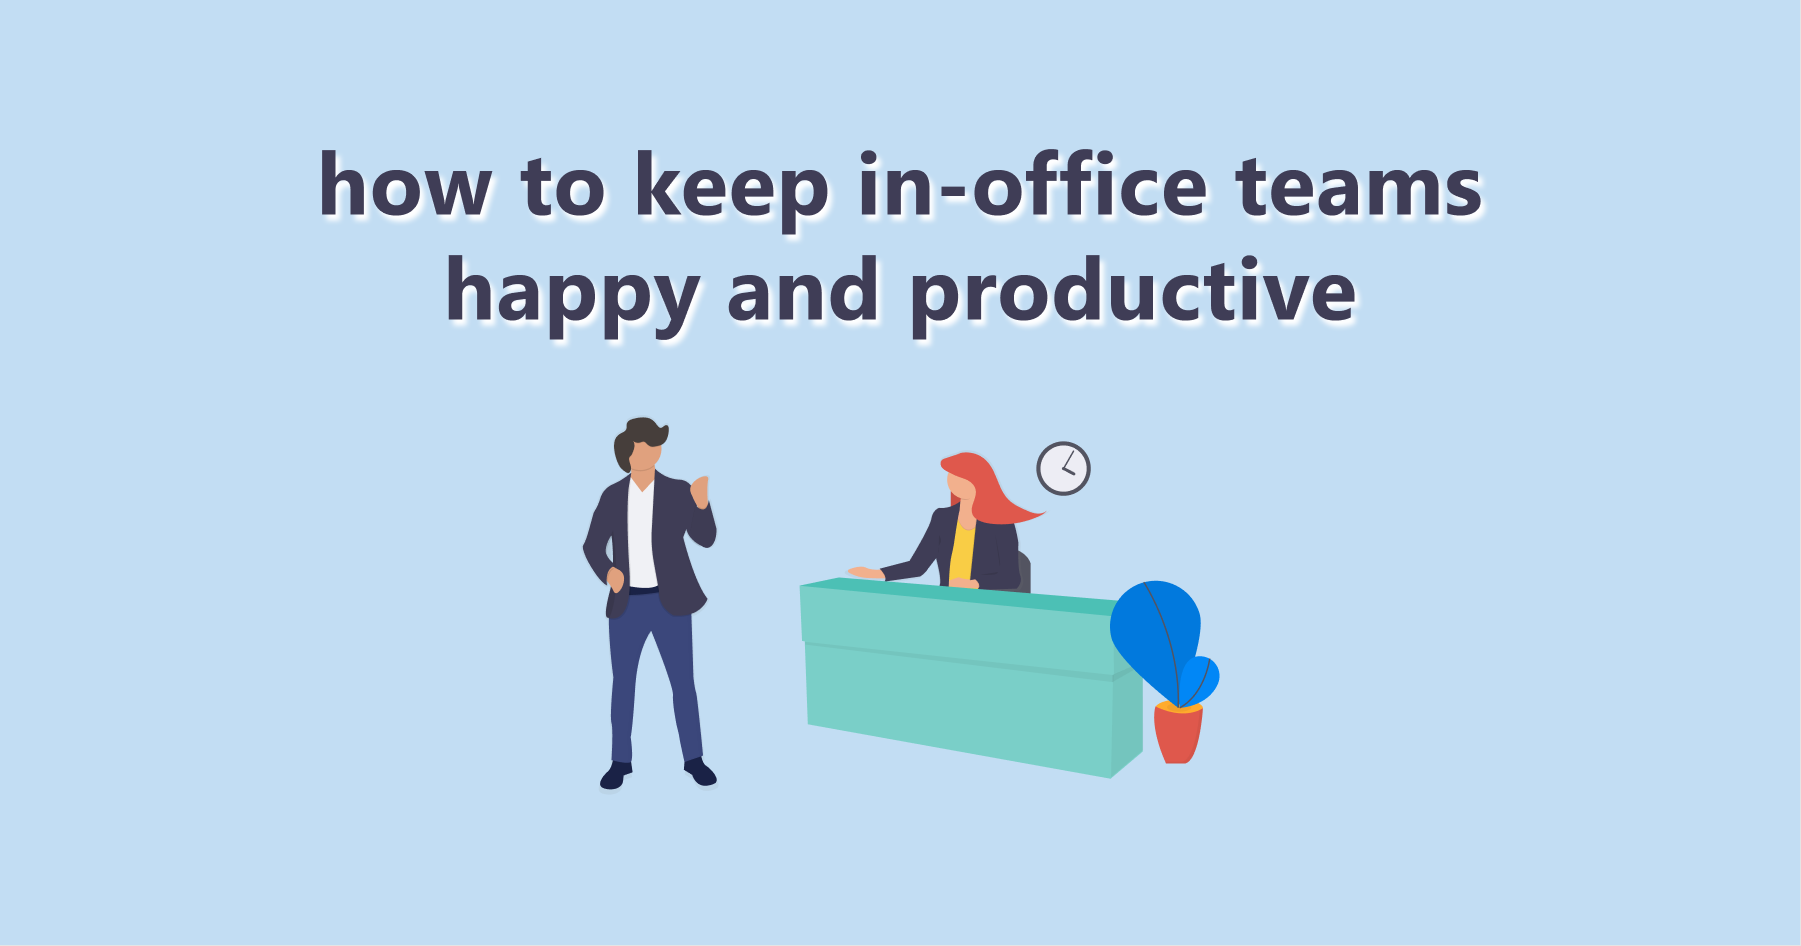 7 Ways To Keep In-Office Teams Happy and Productive